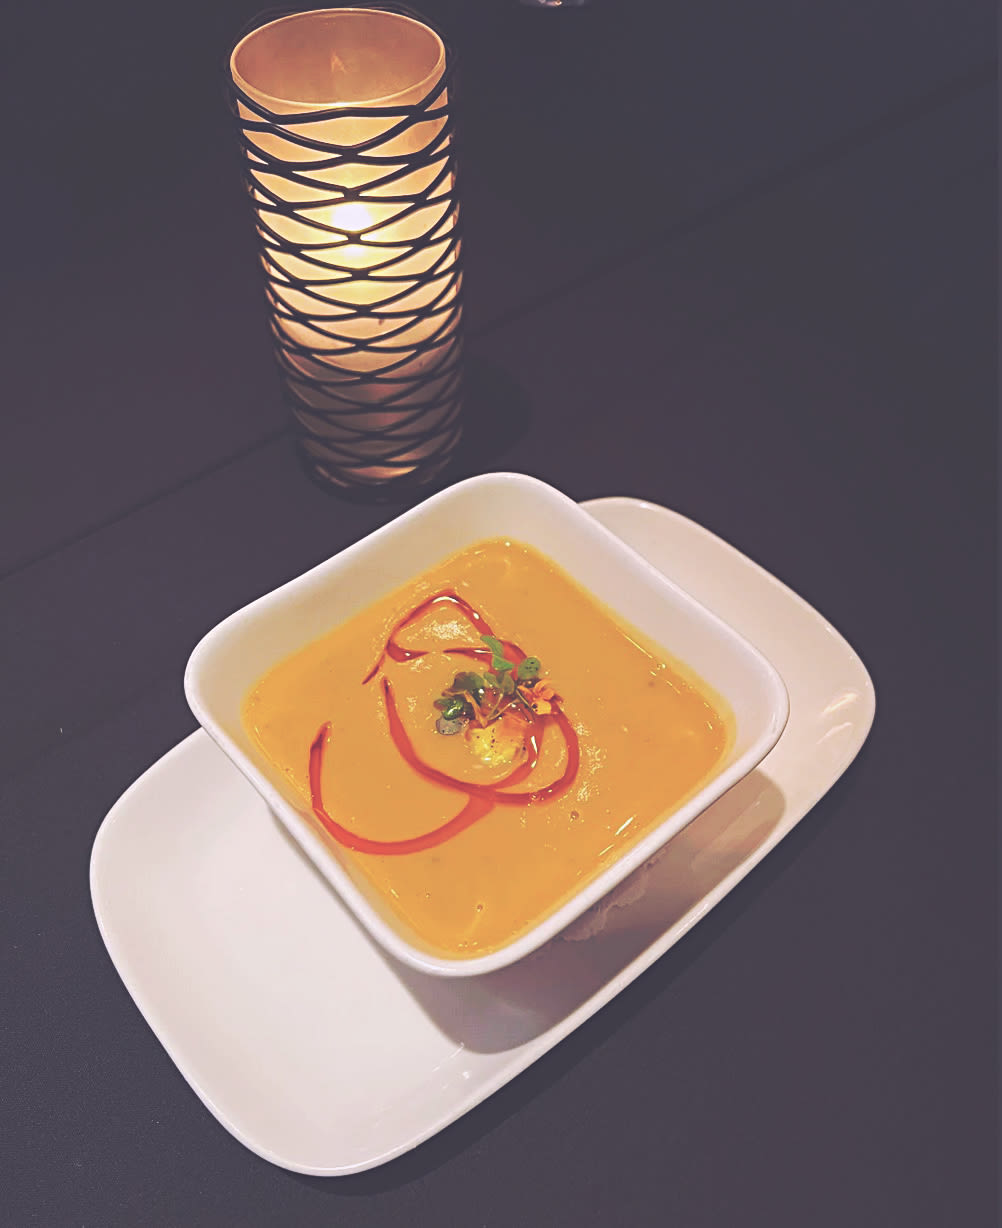 Chef Jose Luis Chavez's sweet potato ginger soup is perfect for fall